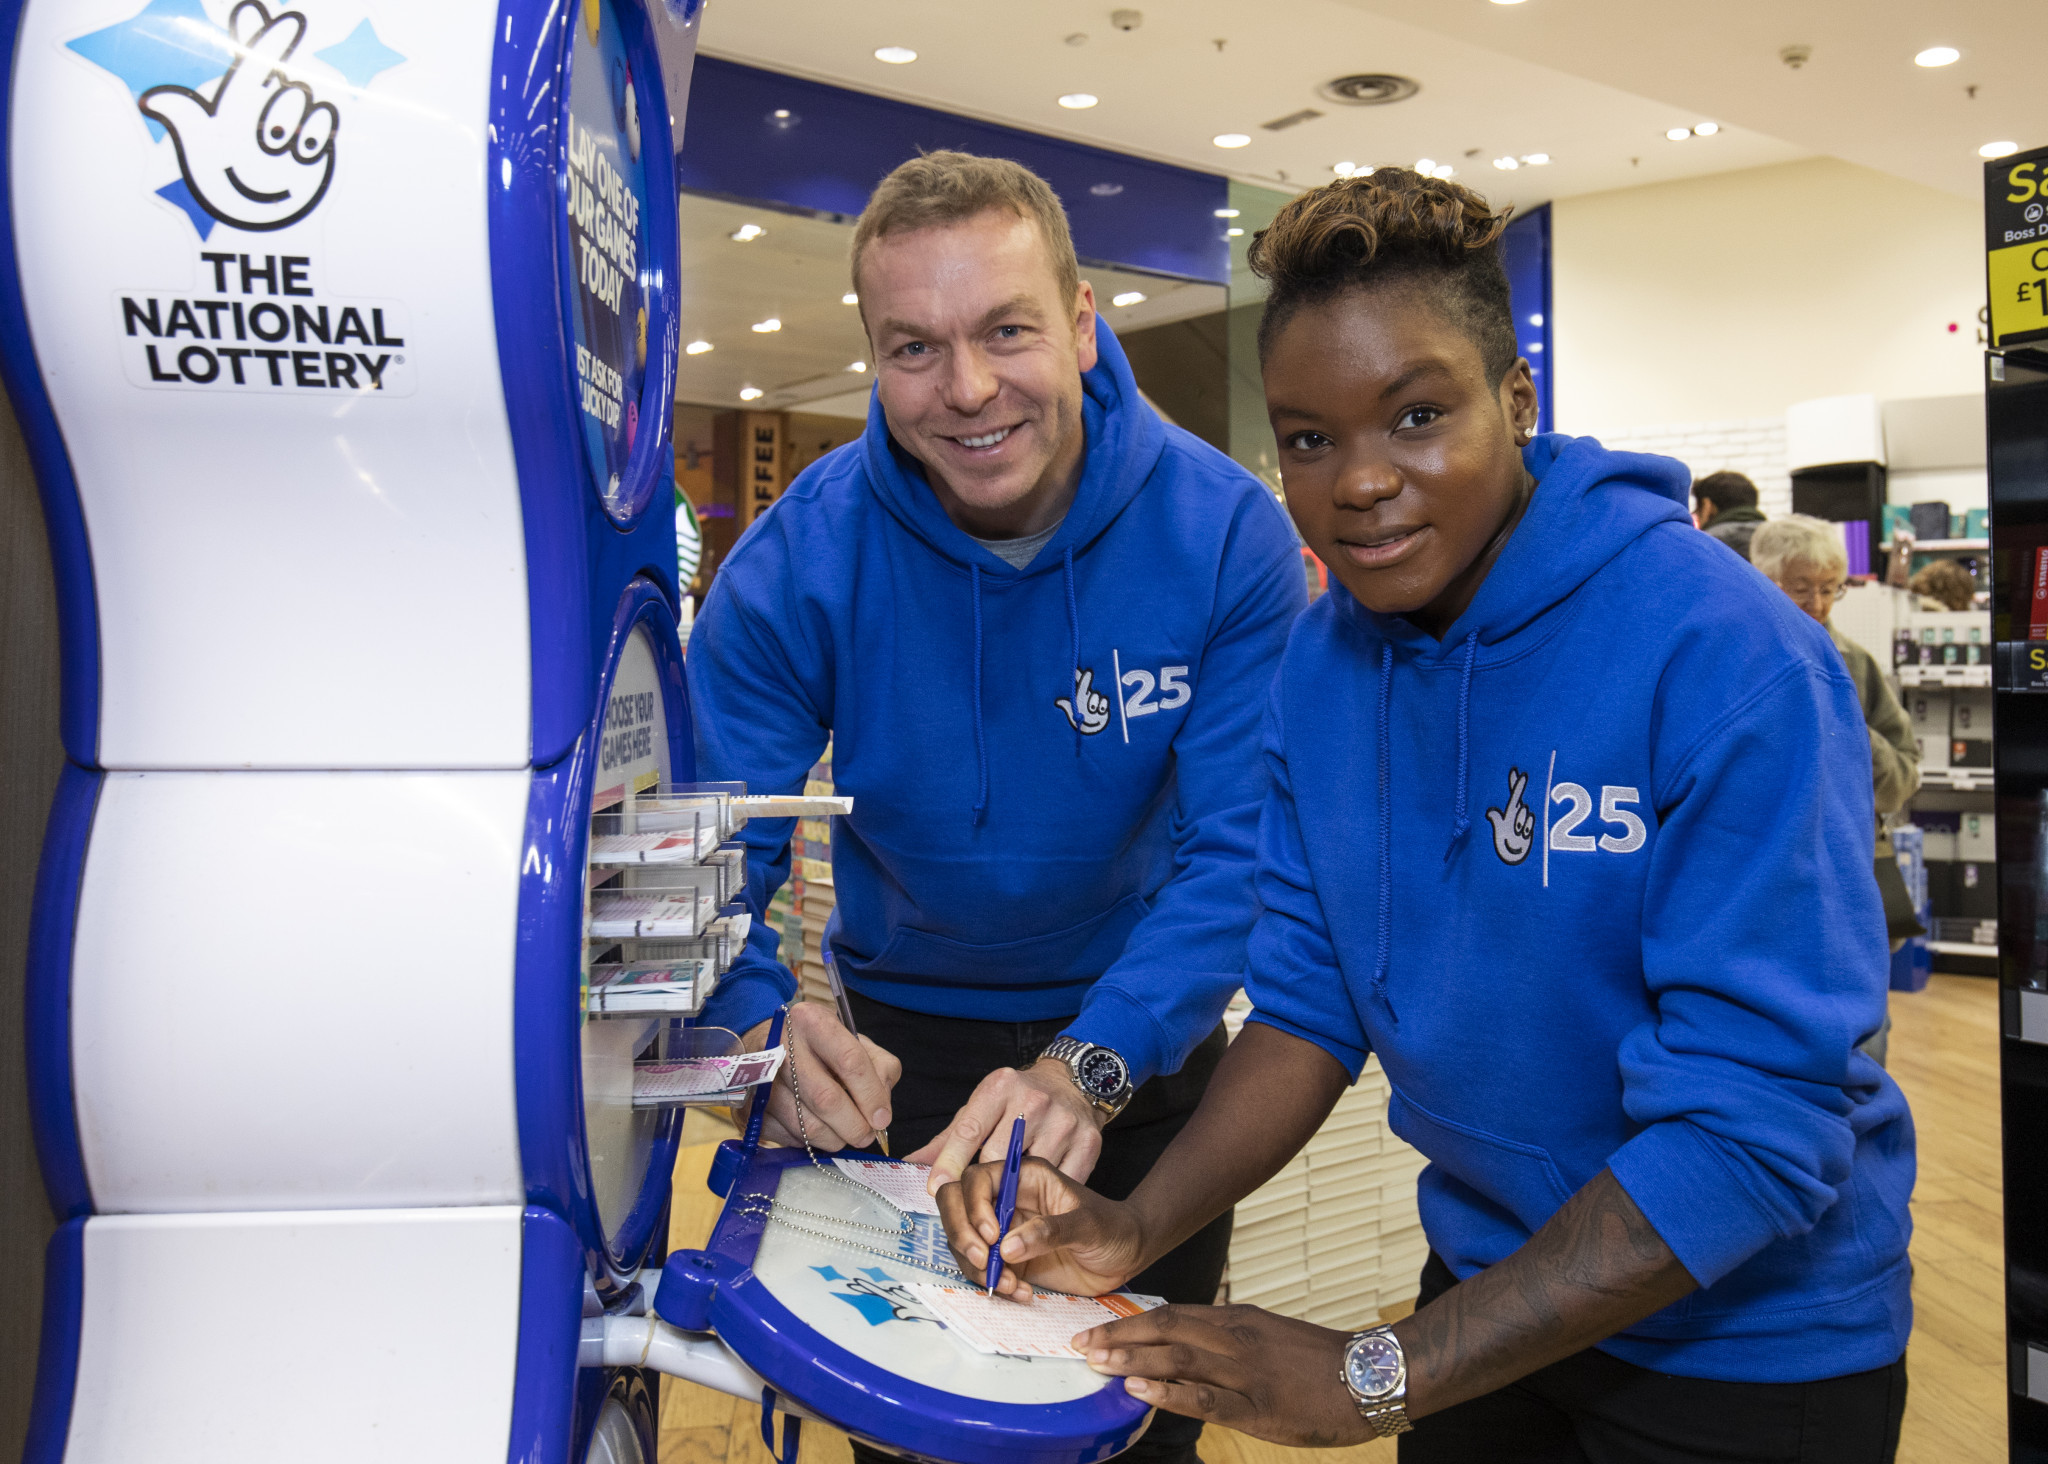 Nicola Adams, pictured here alongside Sir Chris Hoy, has had a huge effect on the popularity of female boxing in the UK ©Getty Images